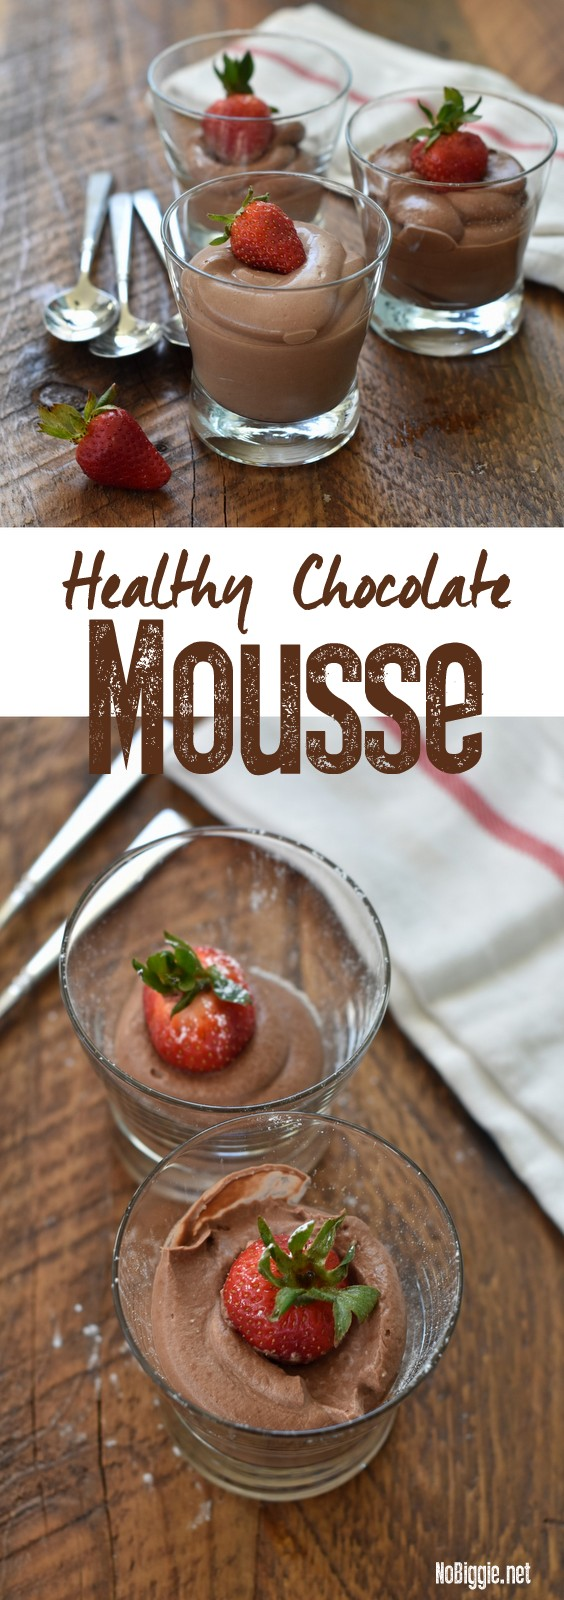 three ingredient healthy chocolate mousse video | NoBiggie.net